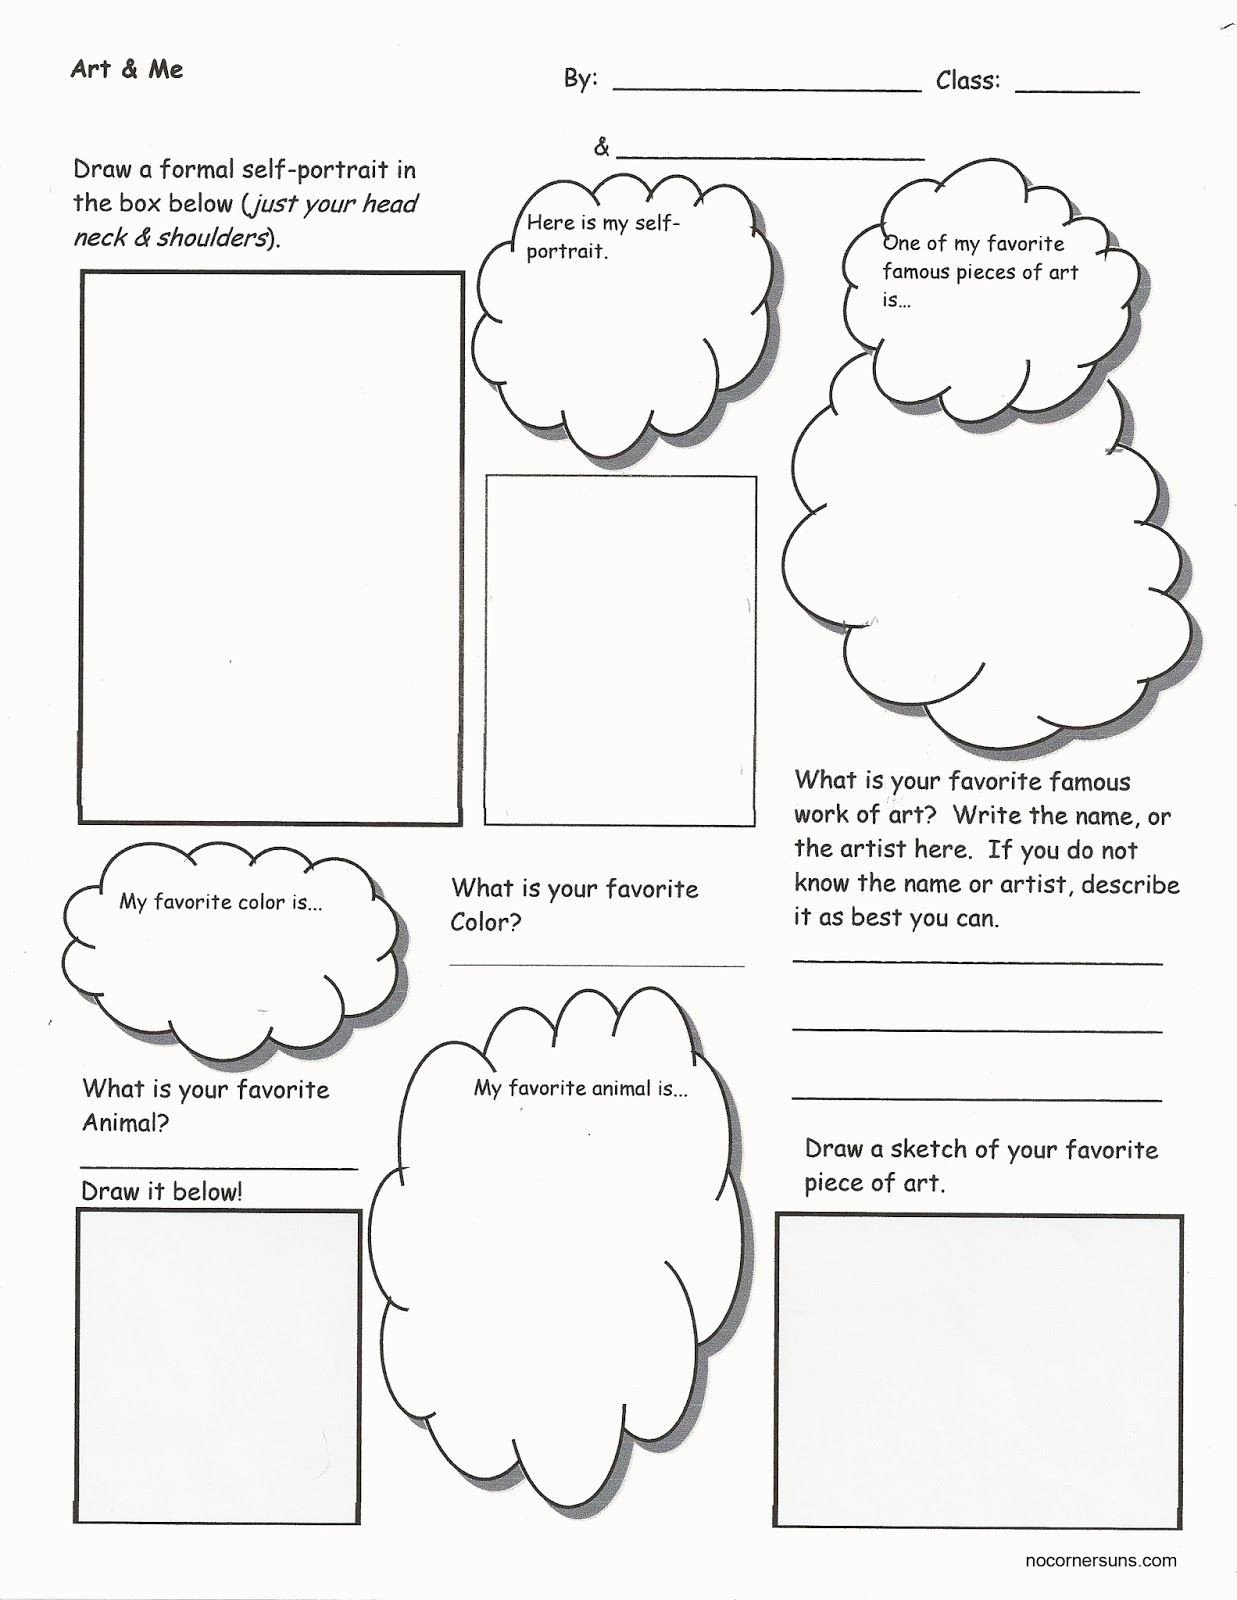 20 Art Worksheets Middle School